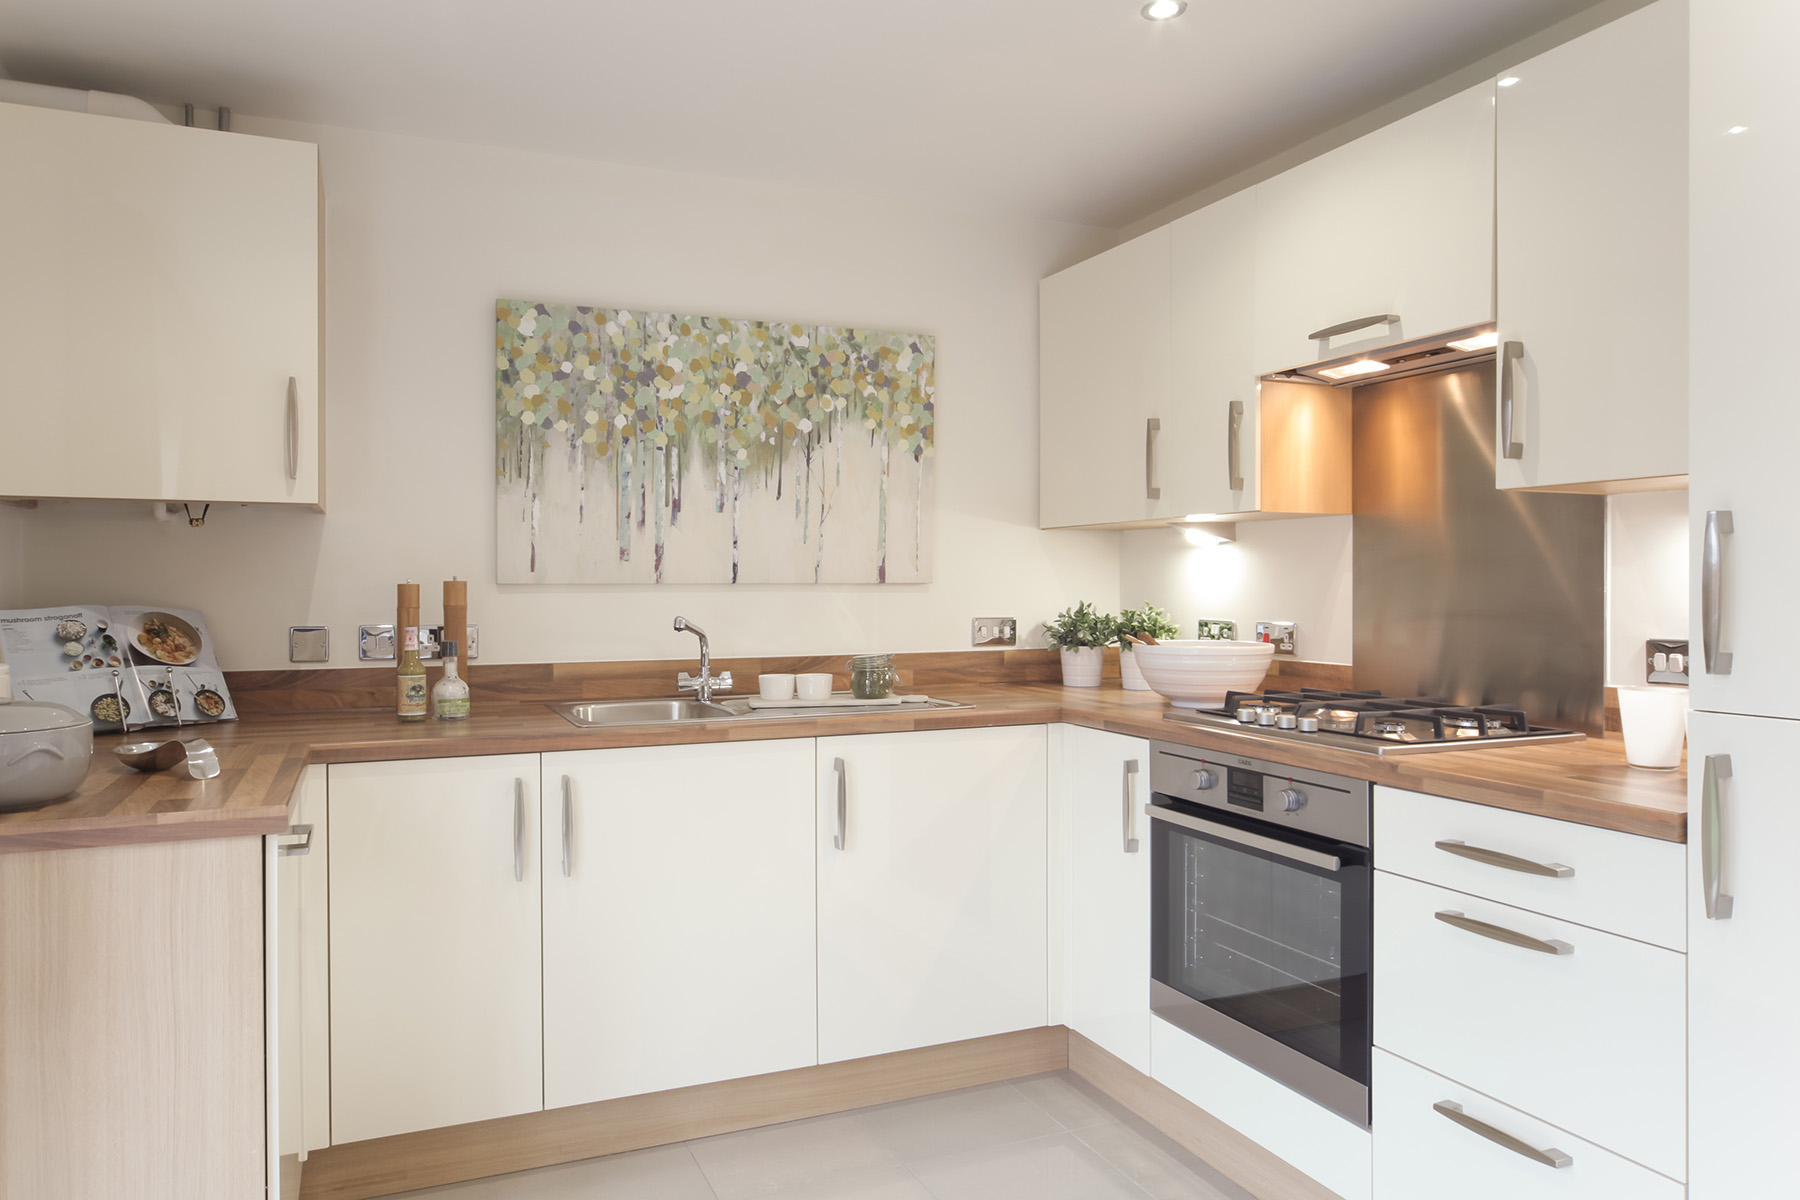 Taylor Wimpey - Cranbrook - Gosford example kitchen